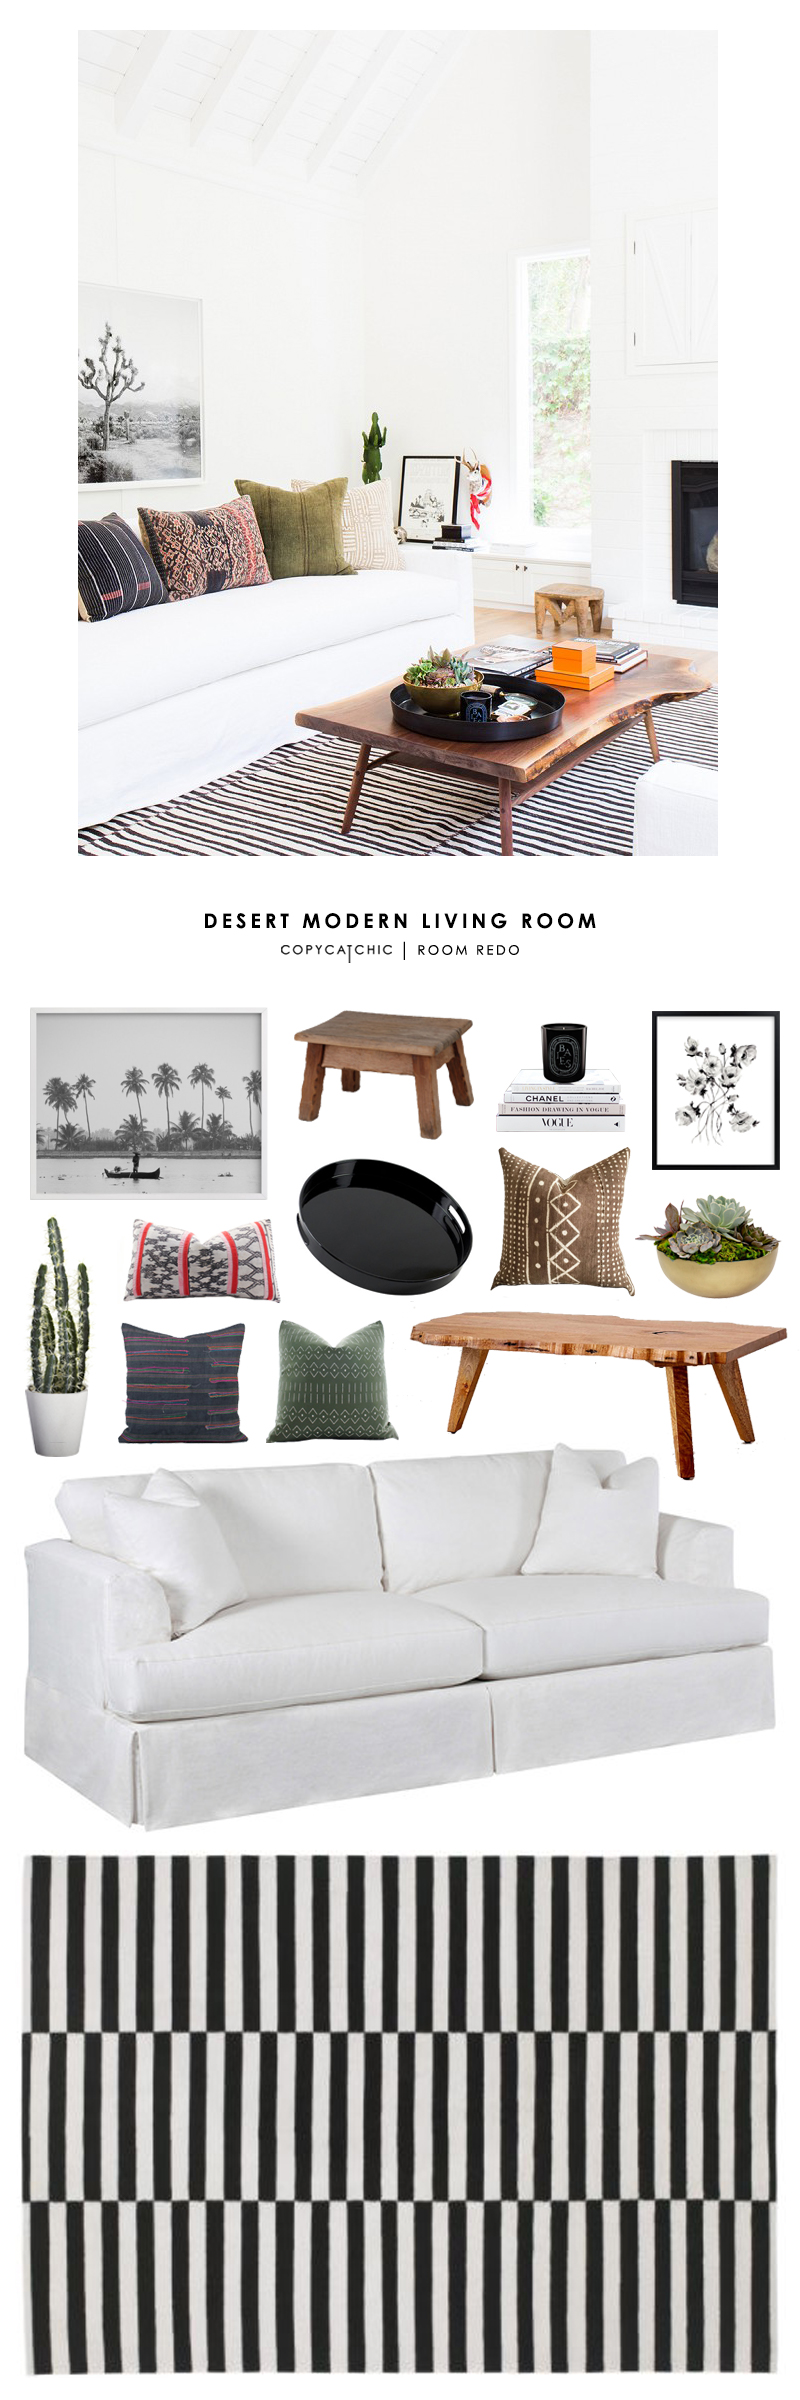 Copy Cat Chic Room Redo Desert Modern Living Room